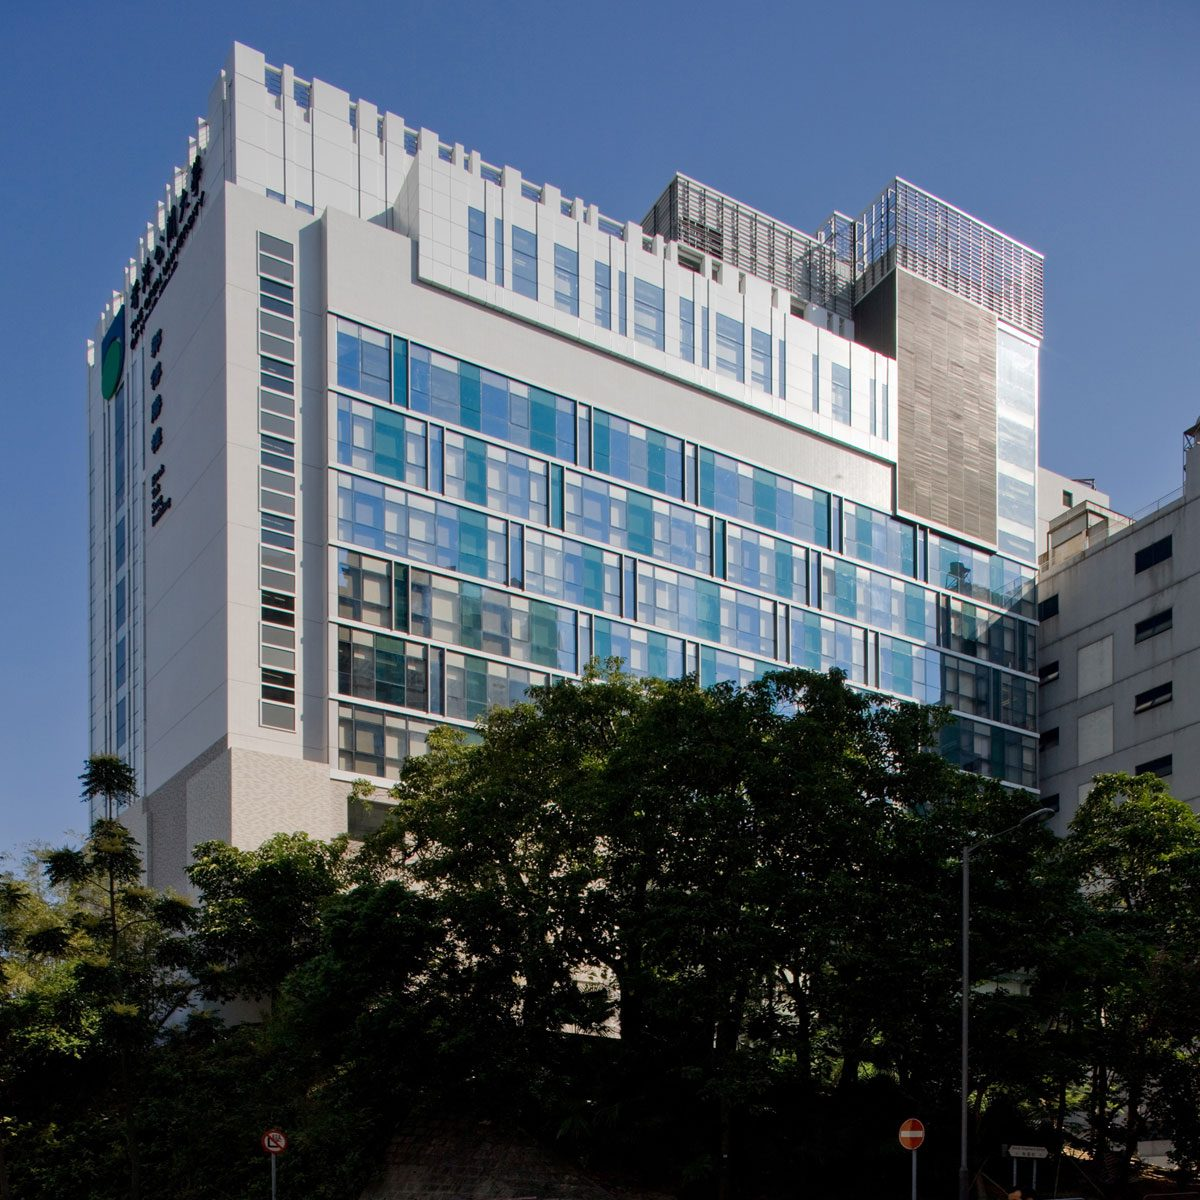 Open University of Hong Kong, The Phase II (Stage 1) Extension Works at 30 Good Shepherd Street, Ho Man Tin, Kowloon